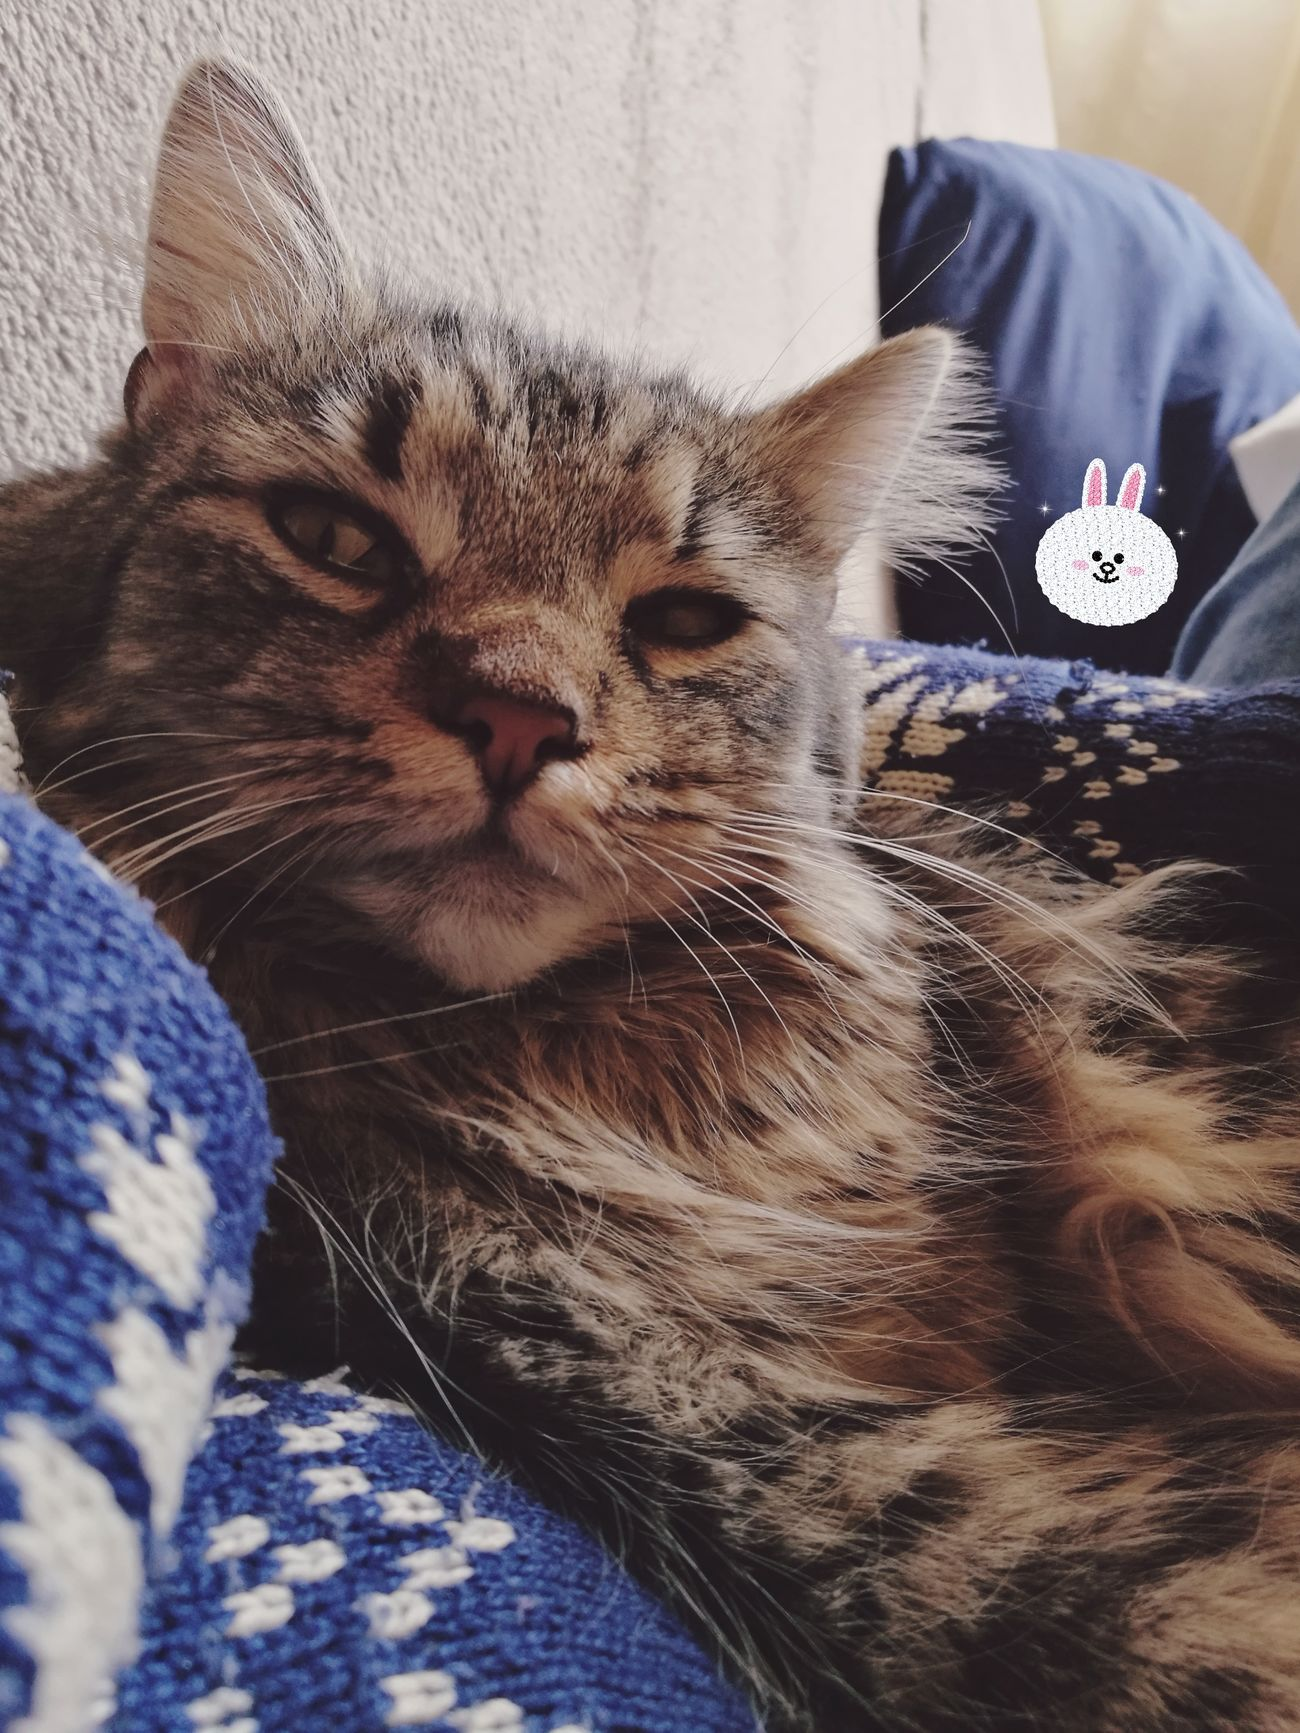 Bubu CDRE Cats Cat Cat Lovers Cats Of EyeEm Mainecoon Pet Furry Hairy  Pets Feline Portrait Cute Cute Pets Tabby Cat AdoptDontShop Eye4photography  HuaweiP9 Huaweiphotography Animal Love Chill Relaxing Cozy Whiskers